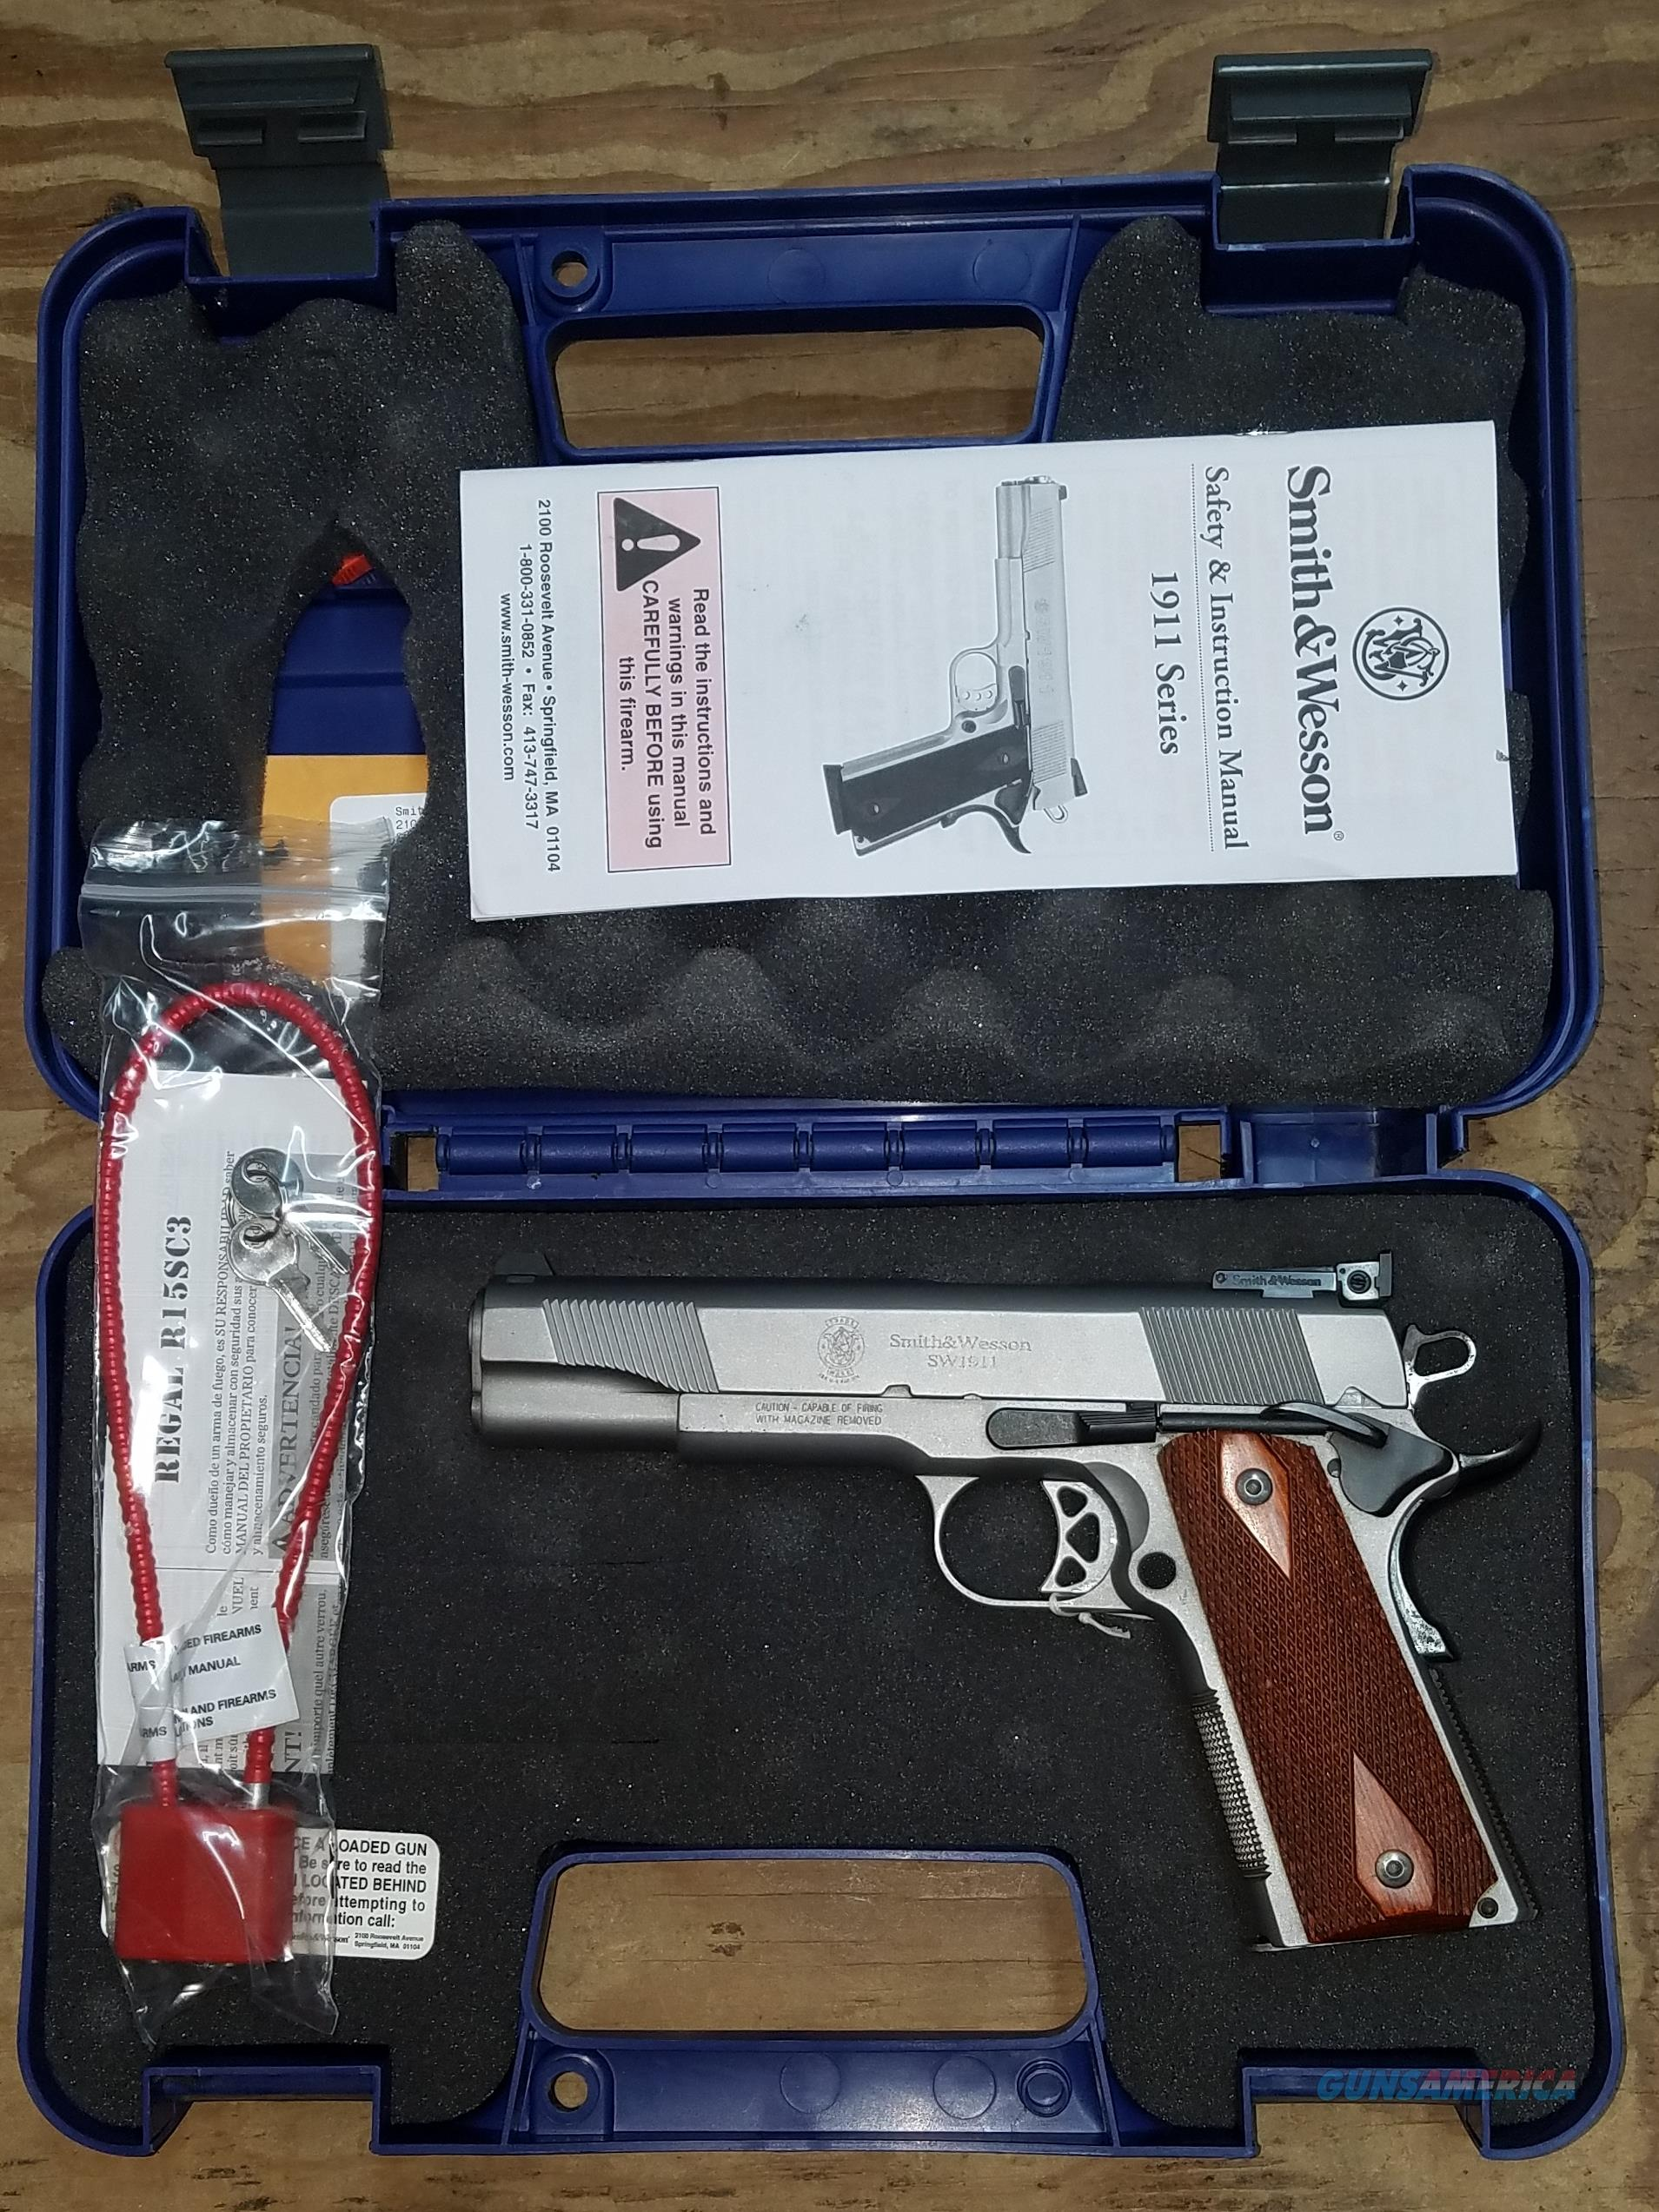 Smith & Wesson Model 1911 45 ACP JRK0535 108482  Guns > Pistols > Smith & Wesson Pistols - Autos > Steel Frame